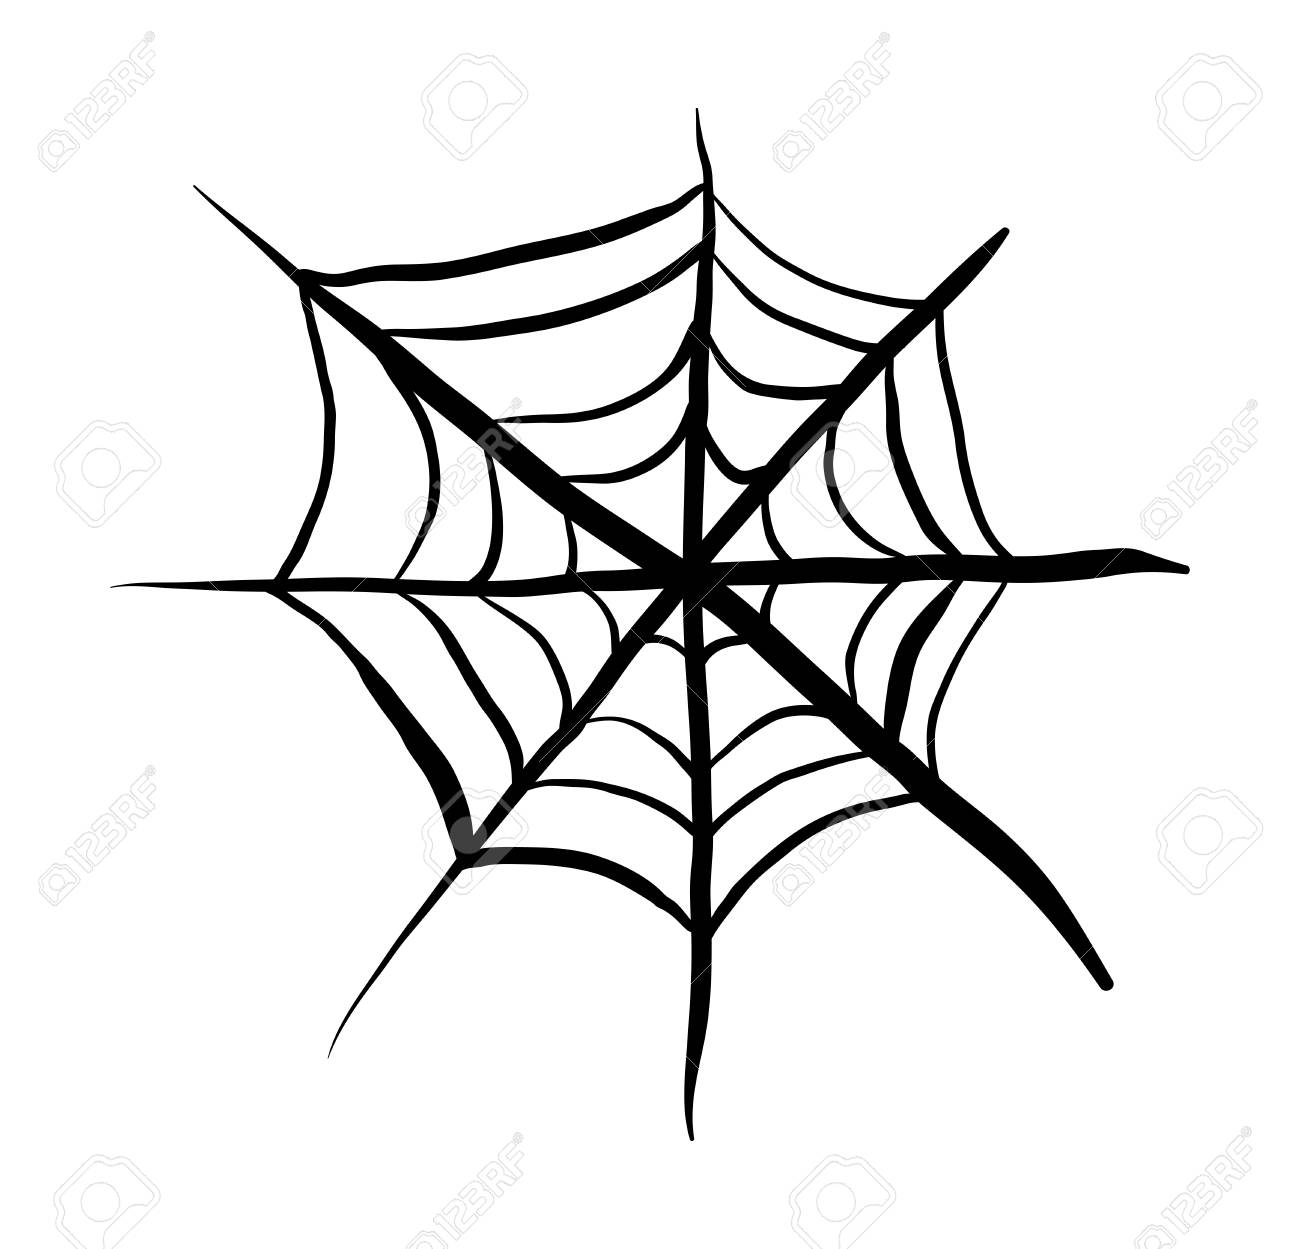 spider web vector symbol icon design beautiful illustration rh 123rf com spider web vector brush spider web vector illustrator